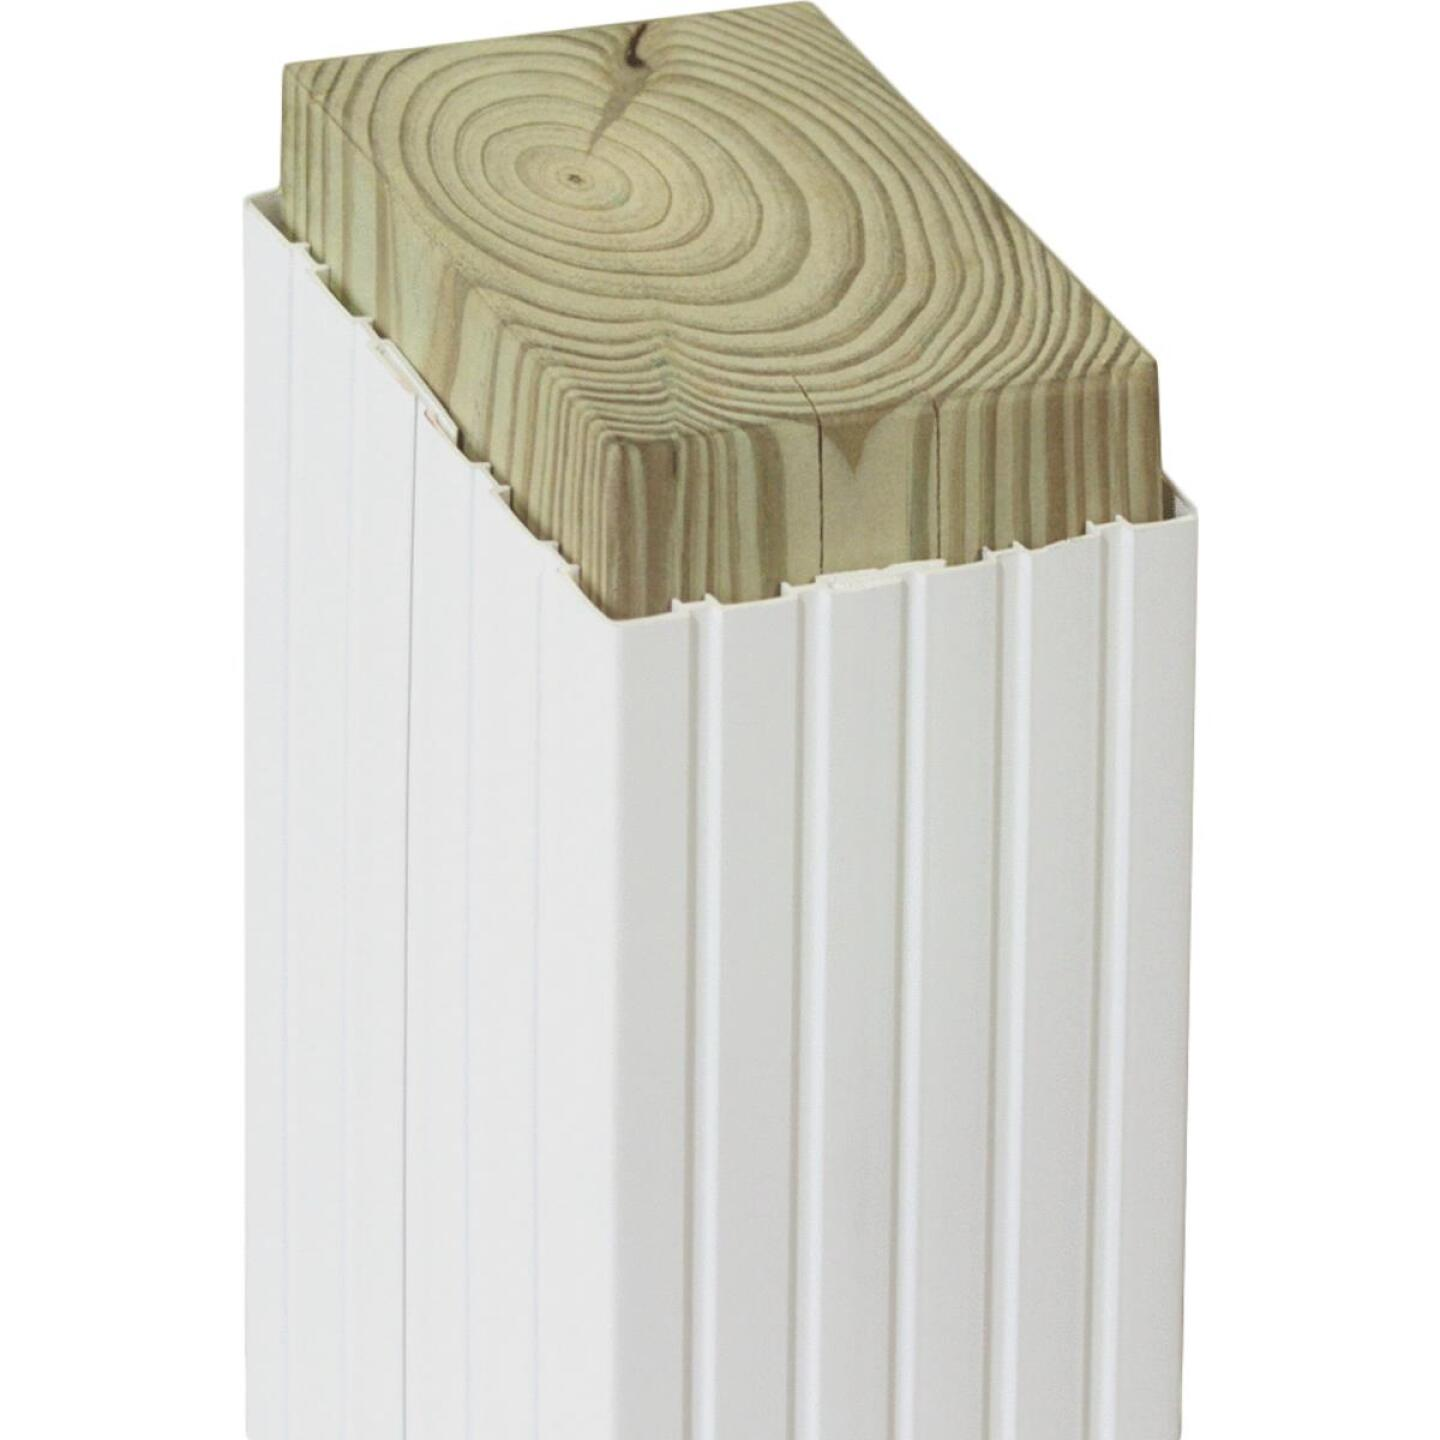 Beechdale 6 In. W x 6 In. H x 102 In. L White PVC Fluted Post Wrap Image 1